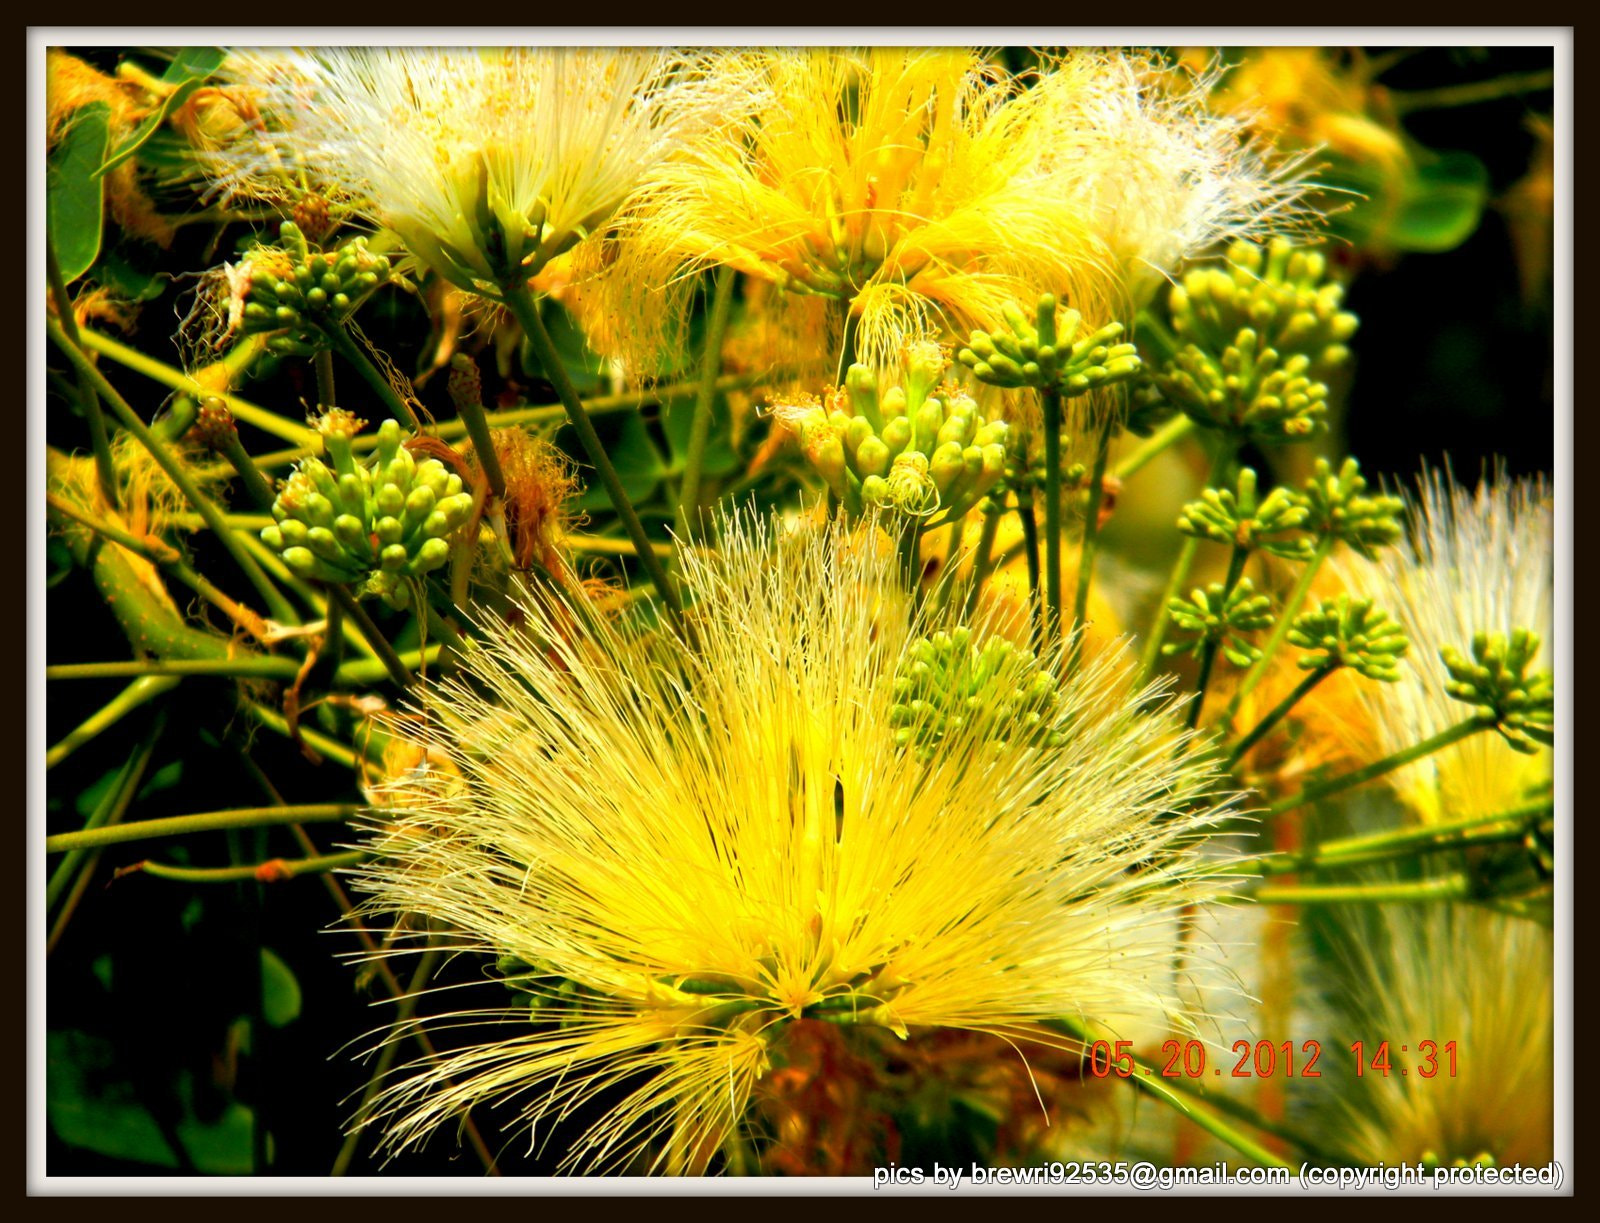 Photograph Mimosa flowers by Brenda Wright on 500px